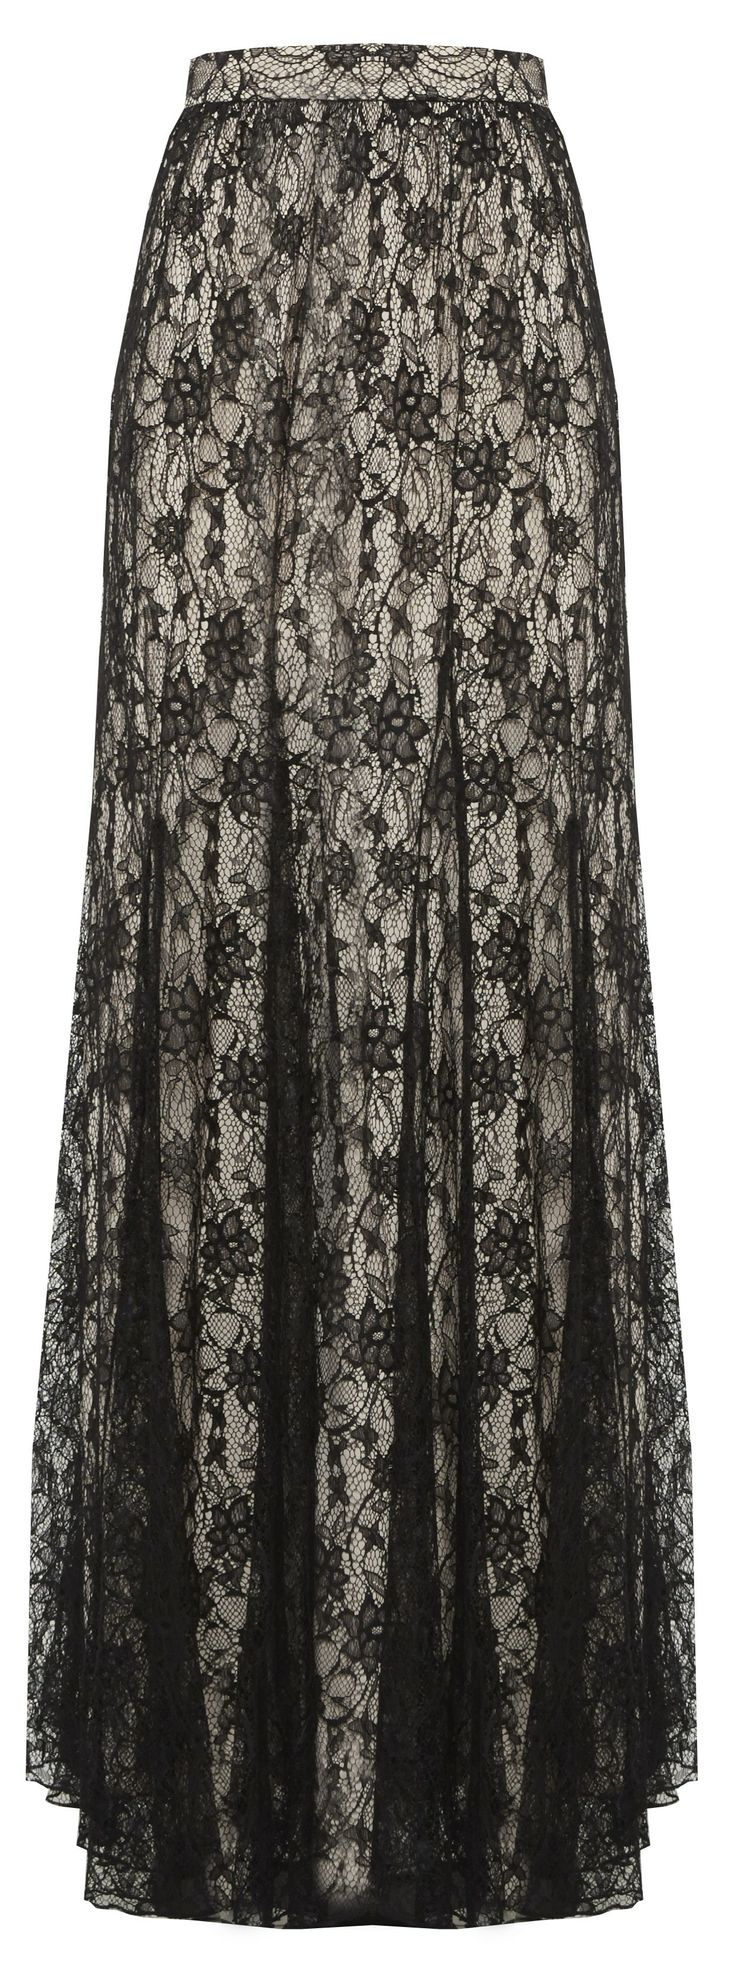 LOUIE LONG LACE SKIRT WITH GODETS